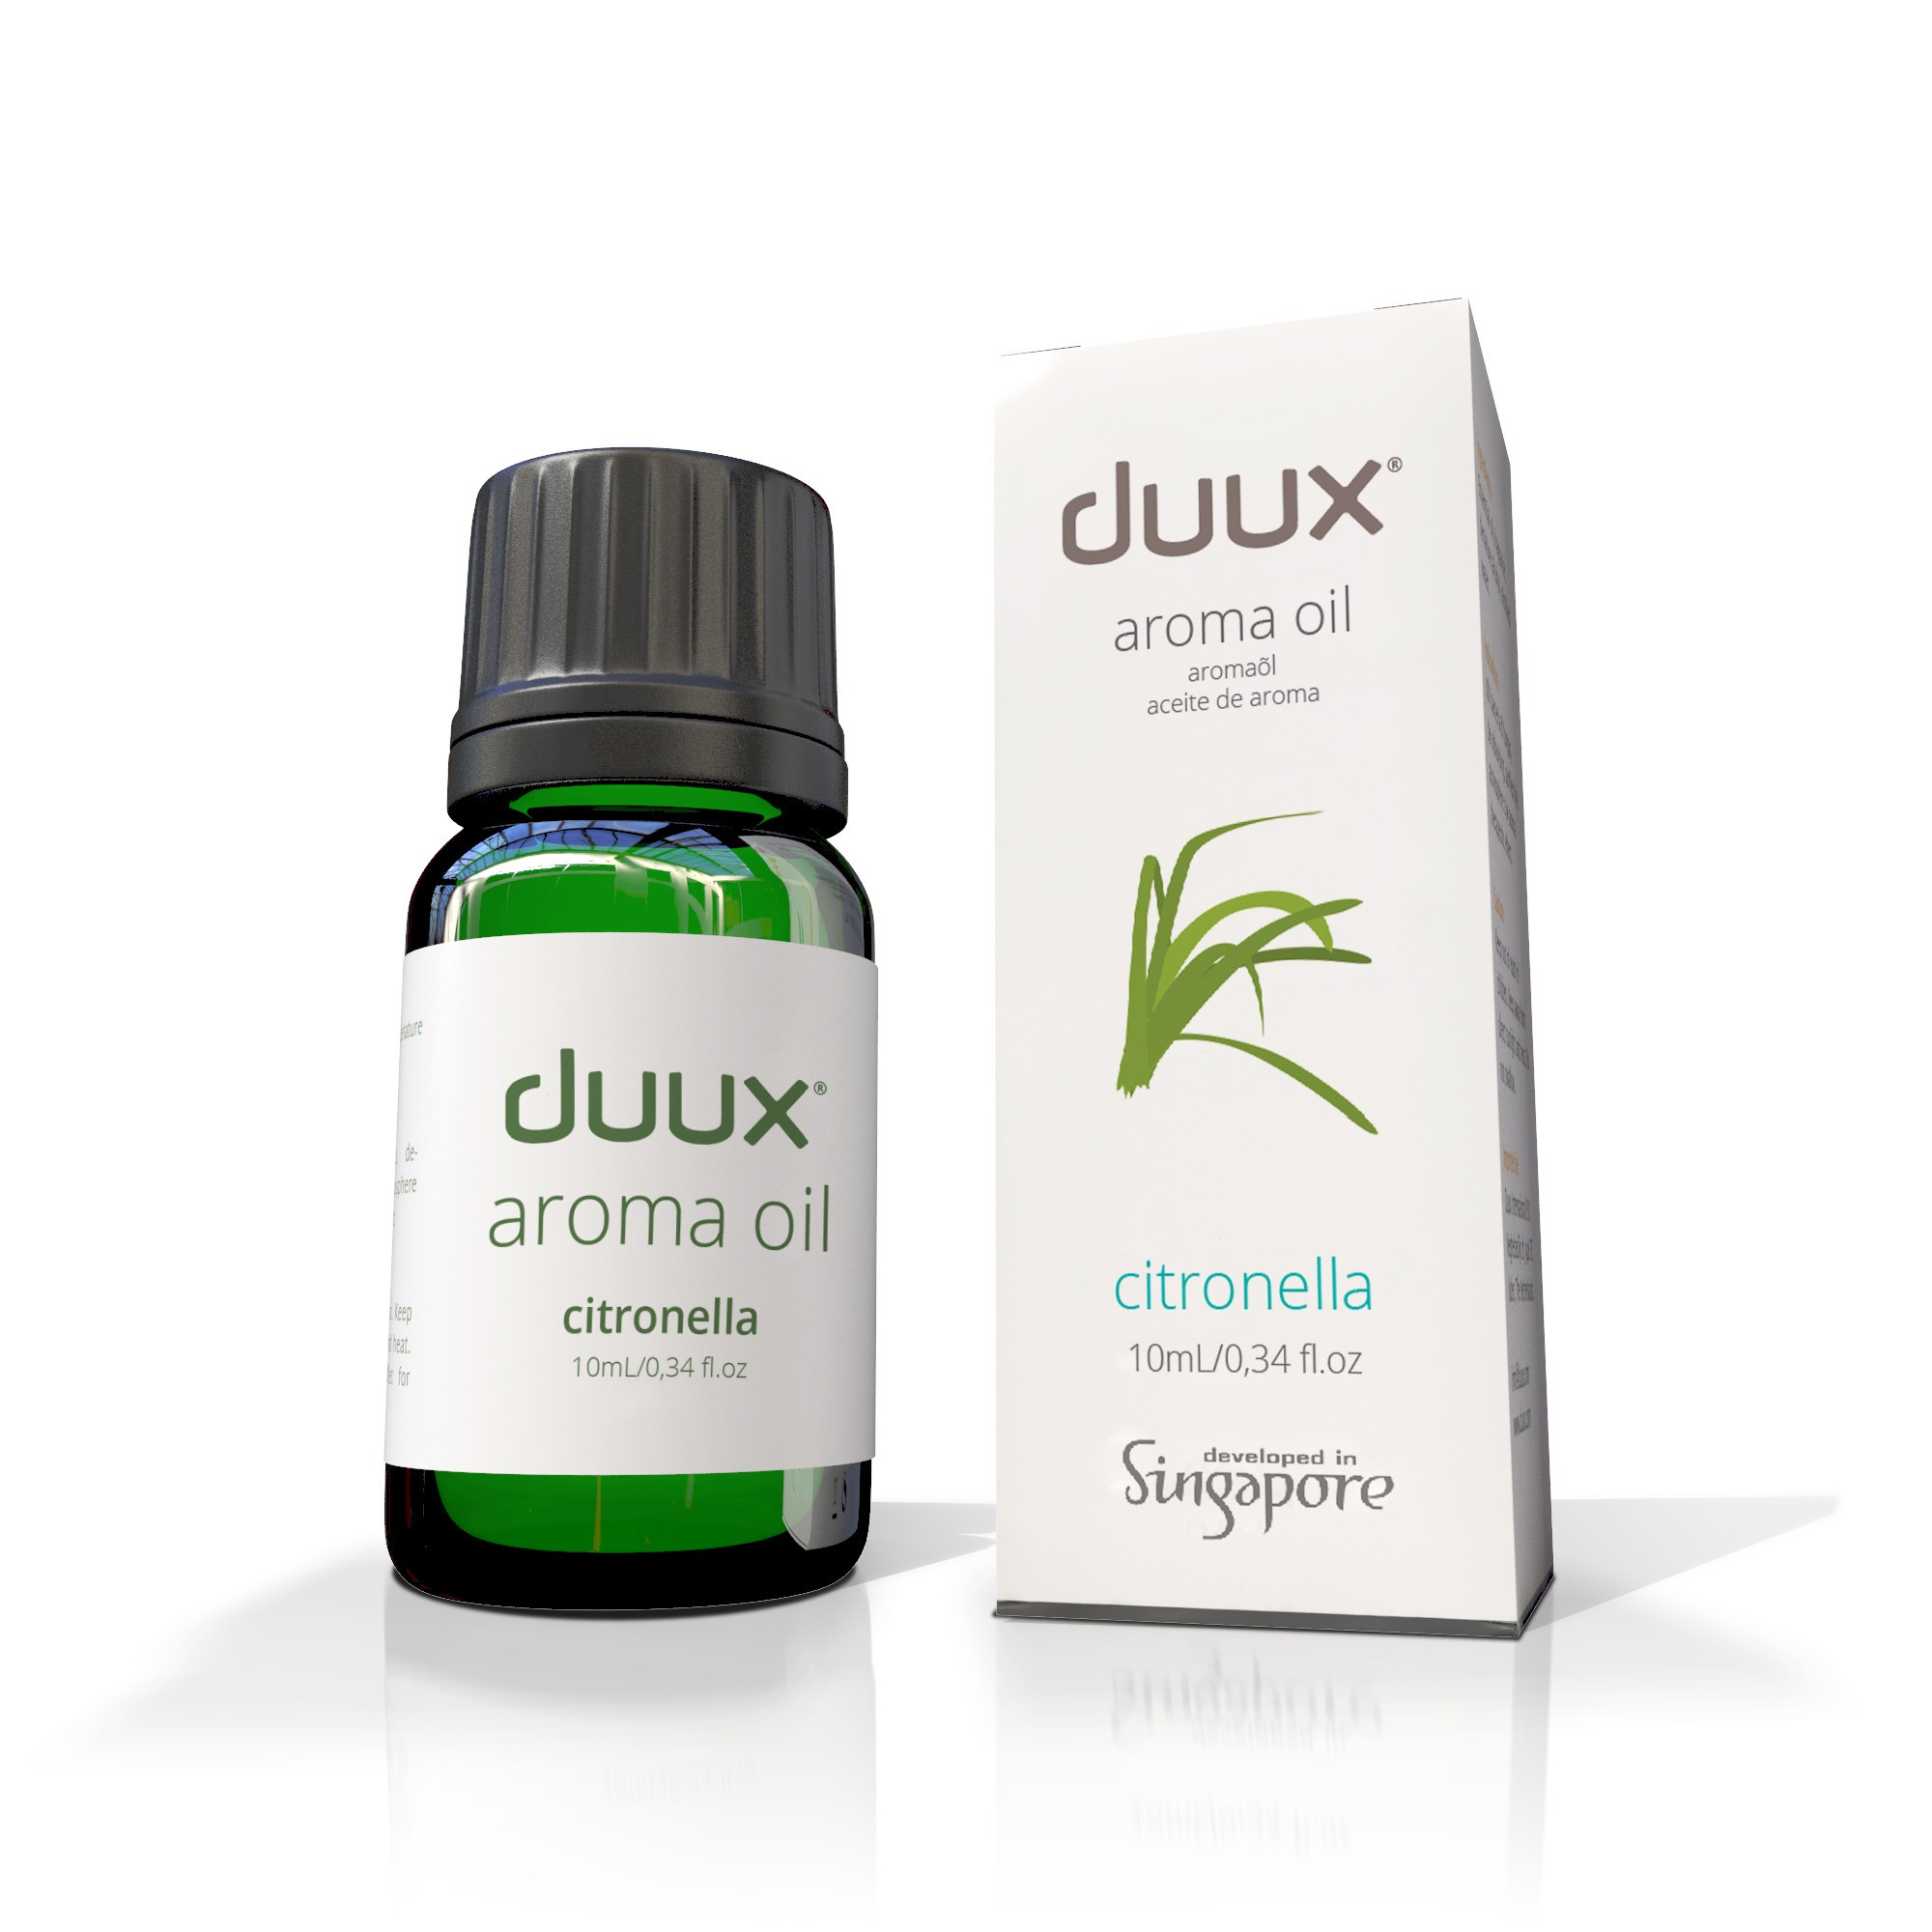 Korting Duux Aromatherapy Citronella for Air Humidifier klimaat accessoire